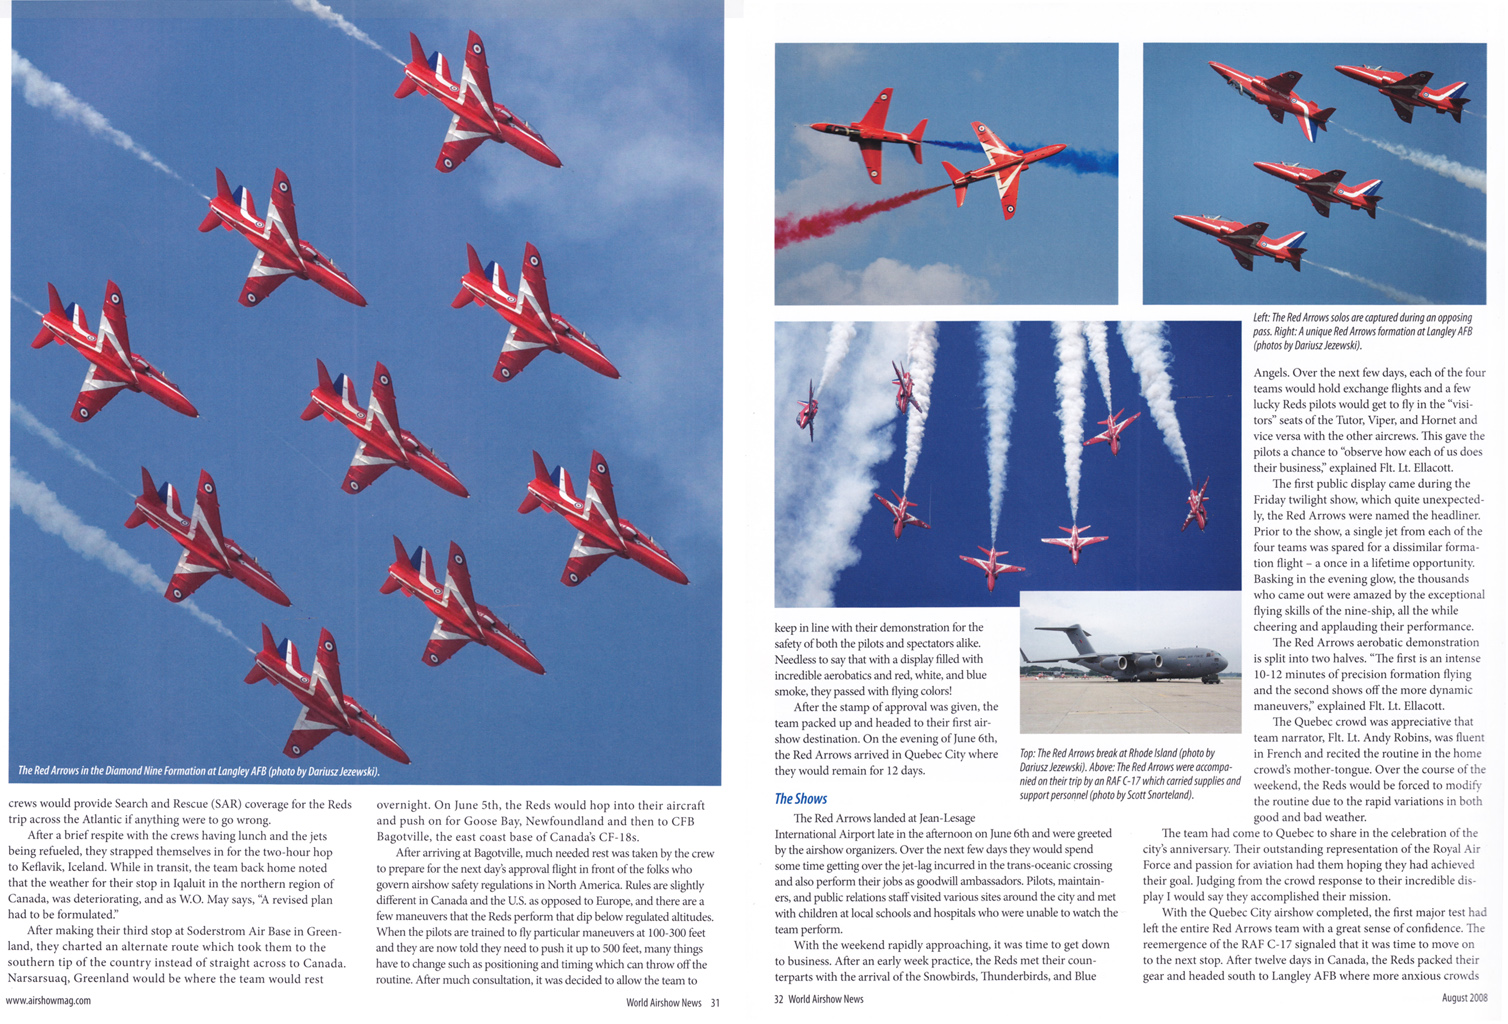 World Airshow News 08-08B.jpg - World Airshow News Red Arrows article pictures